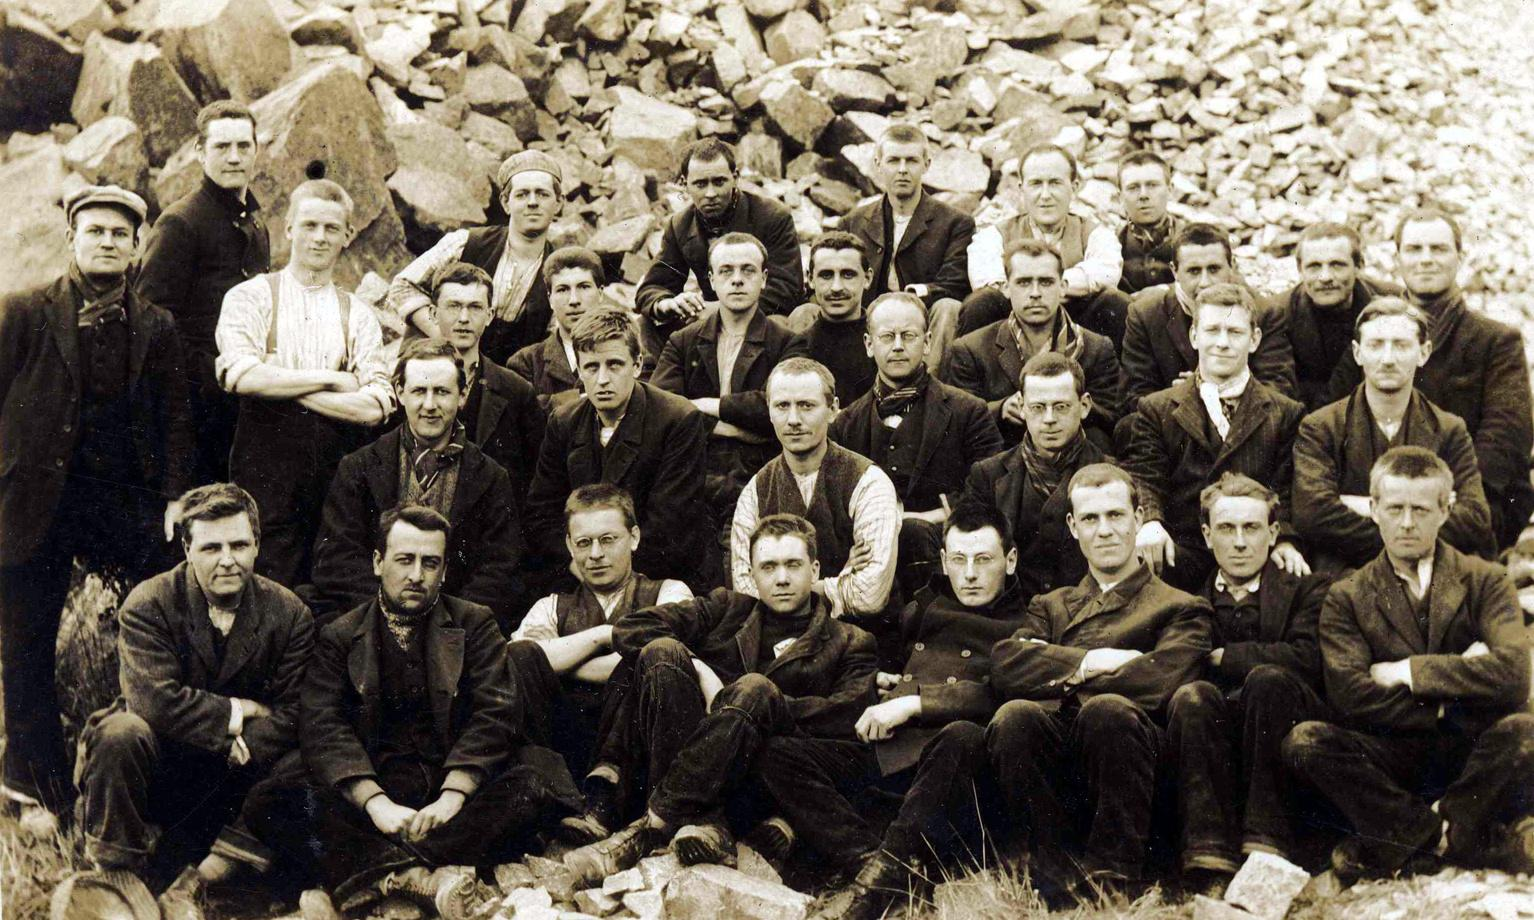 Conscientious objectors of first world war – their untold tales